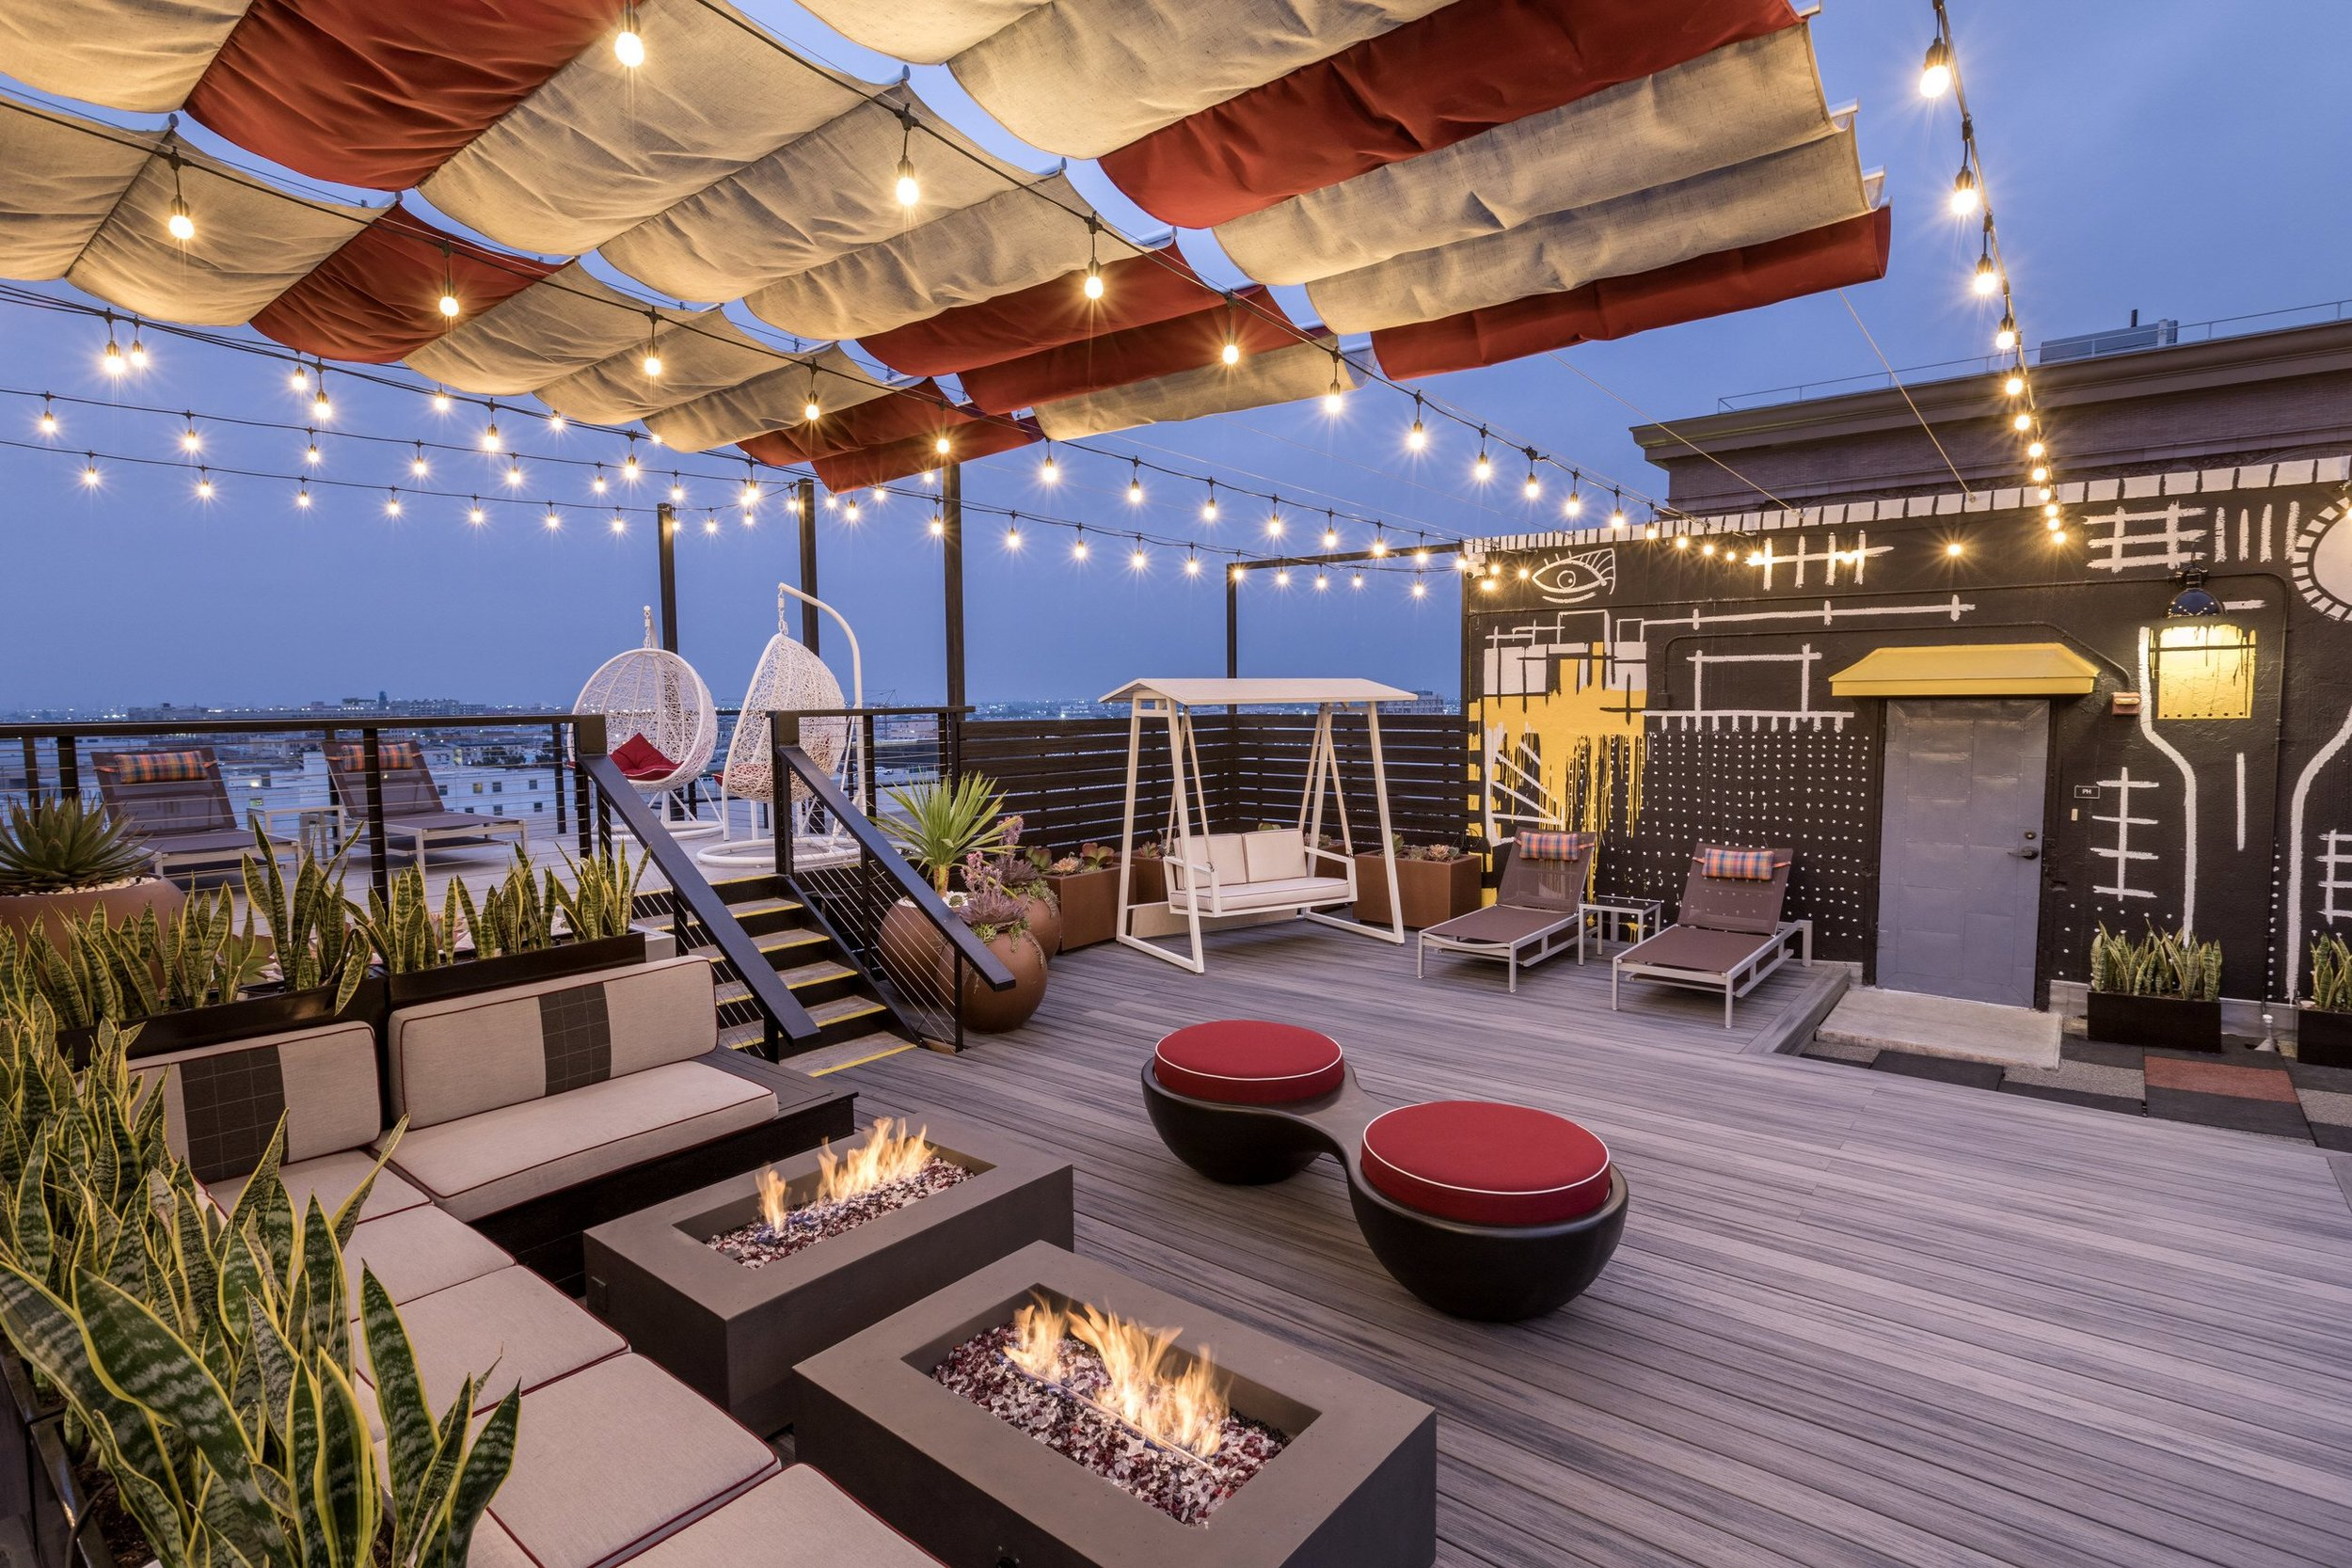 Rooftop Lounge Area at Santa Fe Lofts(1).jpg